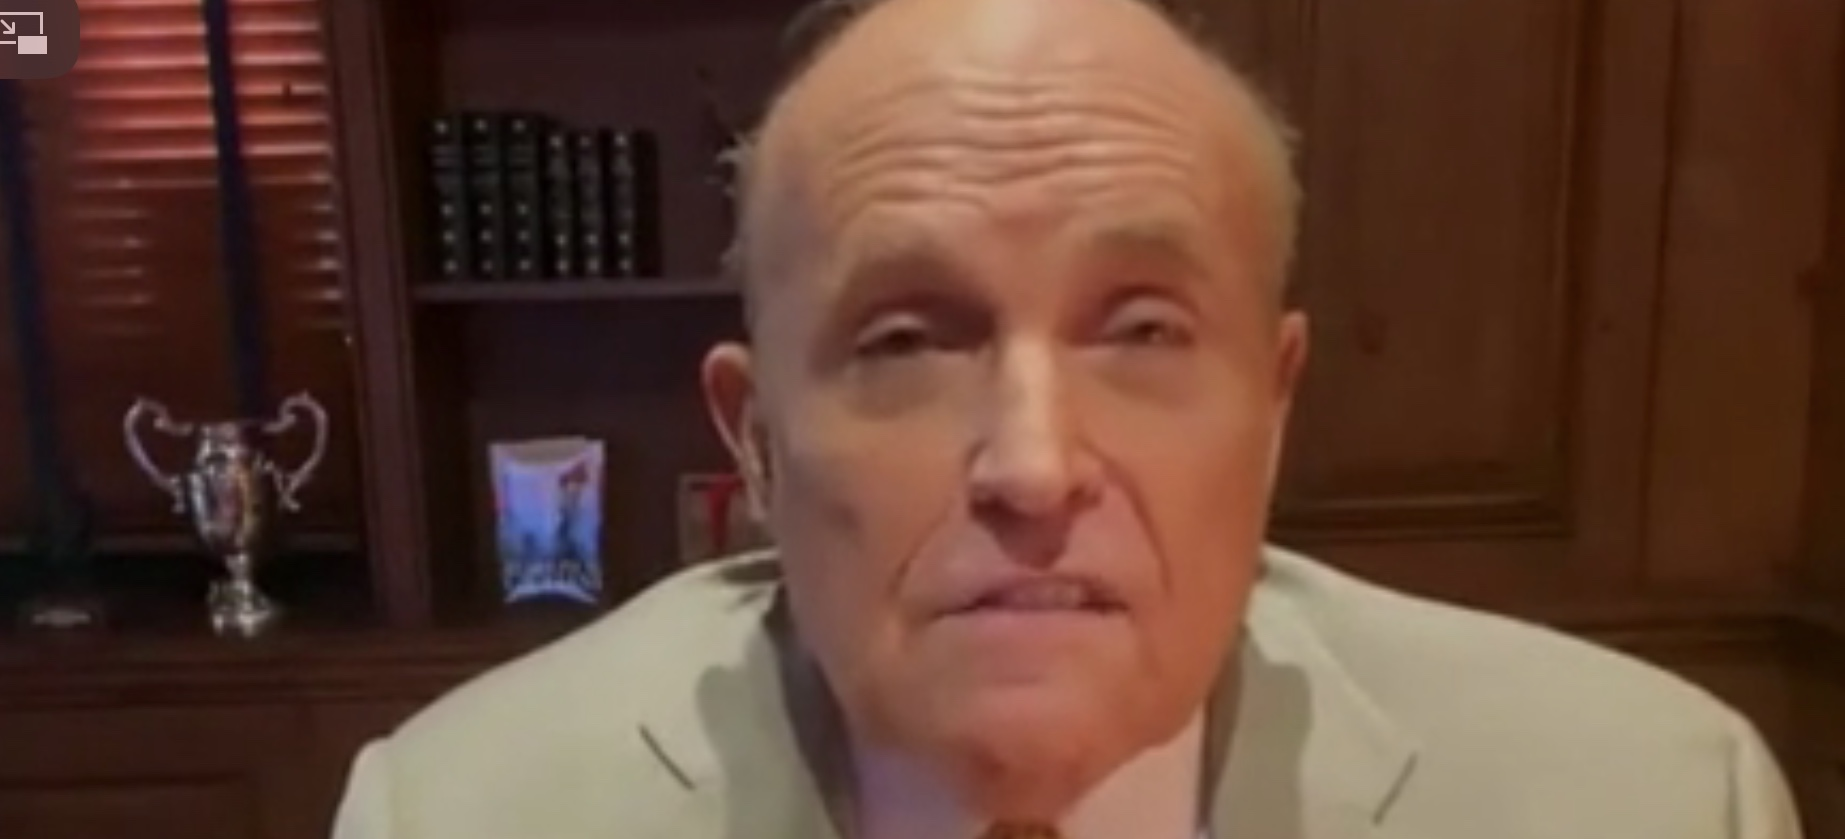 'These Are Killers': Rudy Giuliani Calls Black Lives Matter 'Terrorist Group'